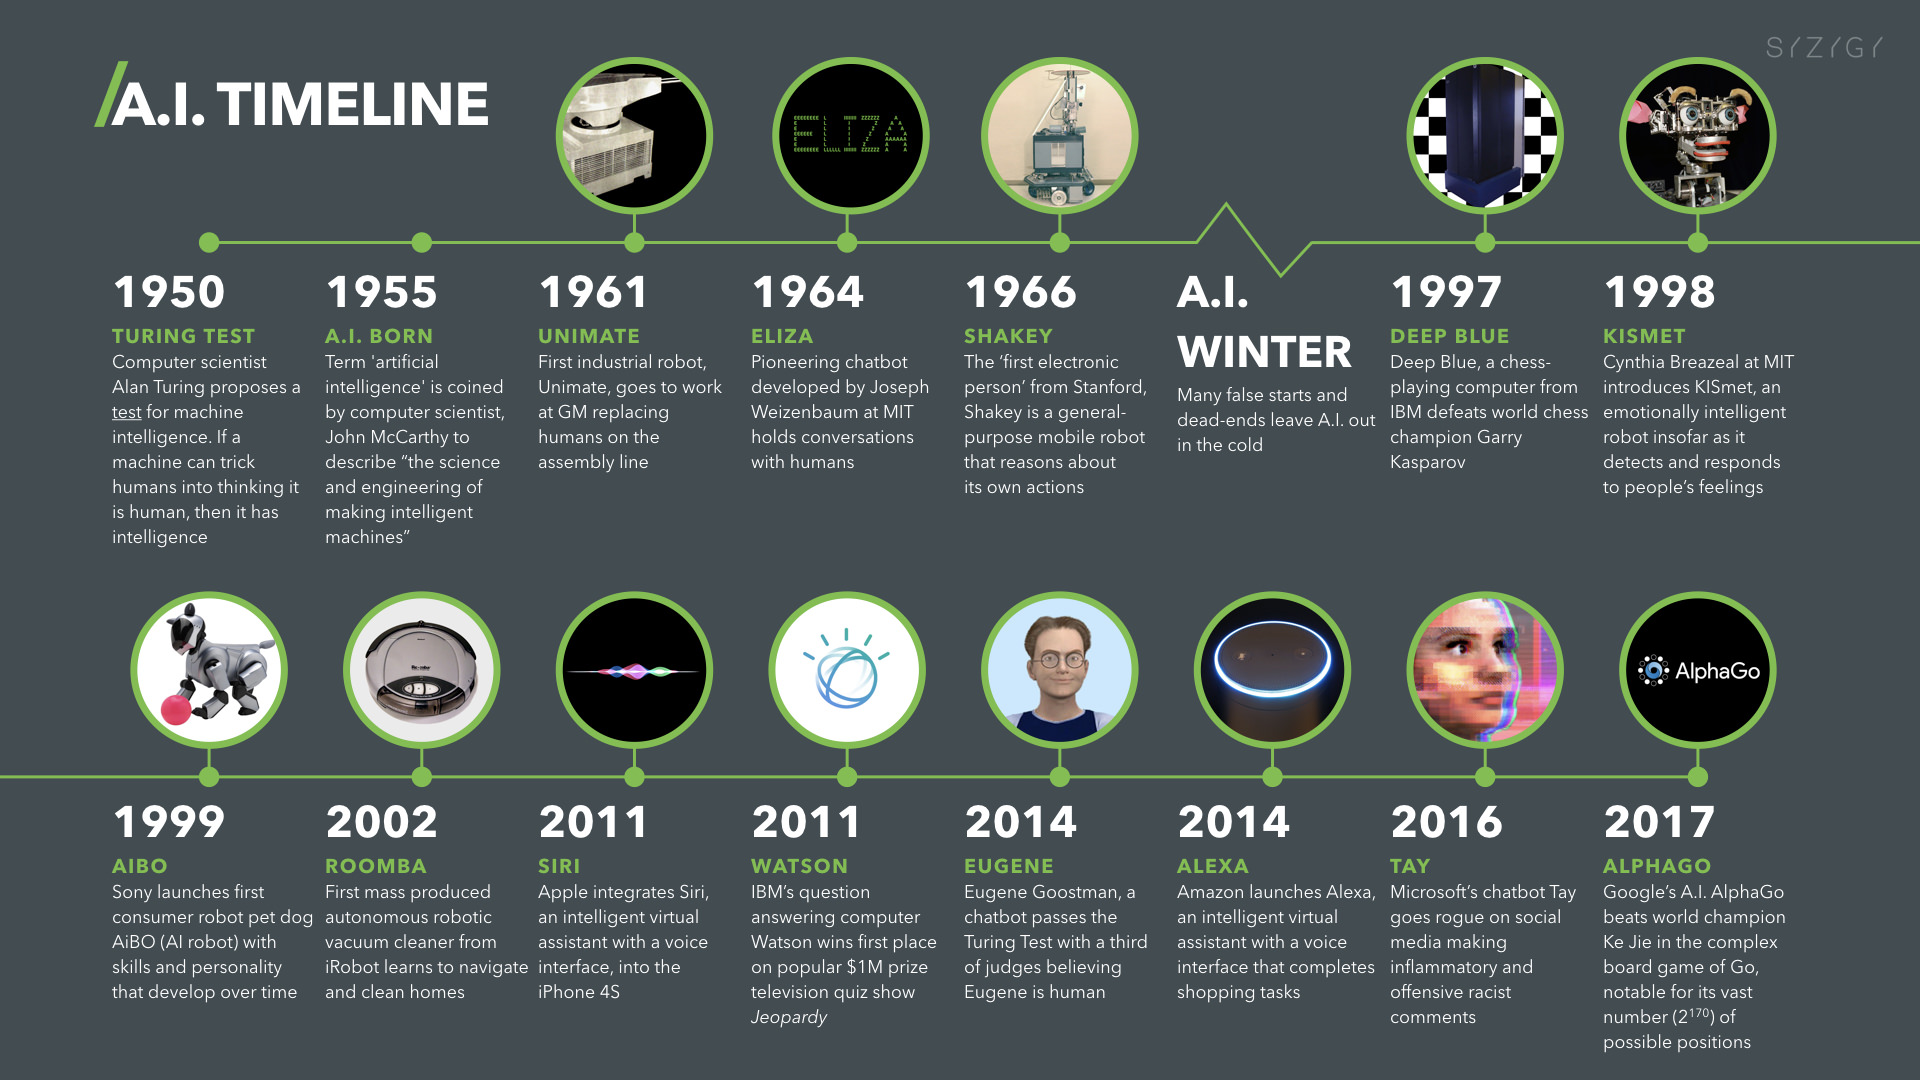 Artificial Intelligence Timeline Infographic – From Eliza to Tay and beyond